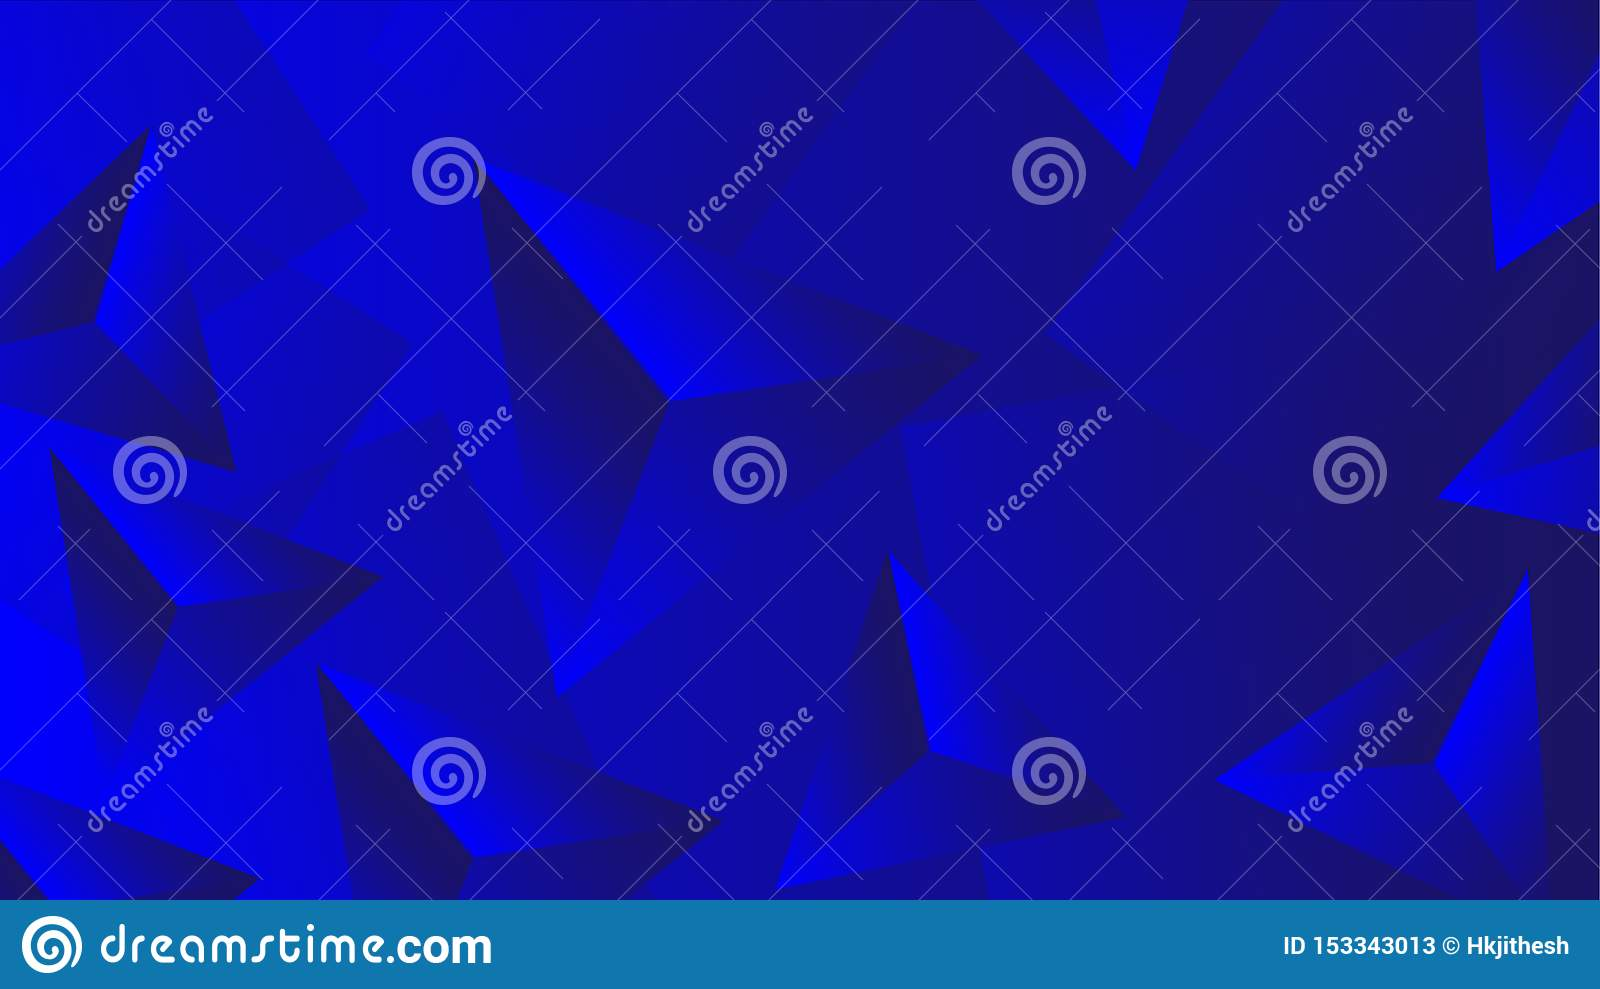 Blue 3D abstract wallpaper for design